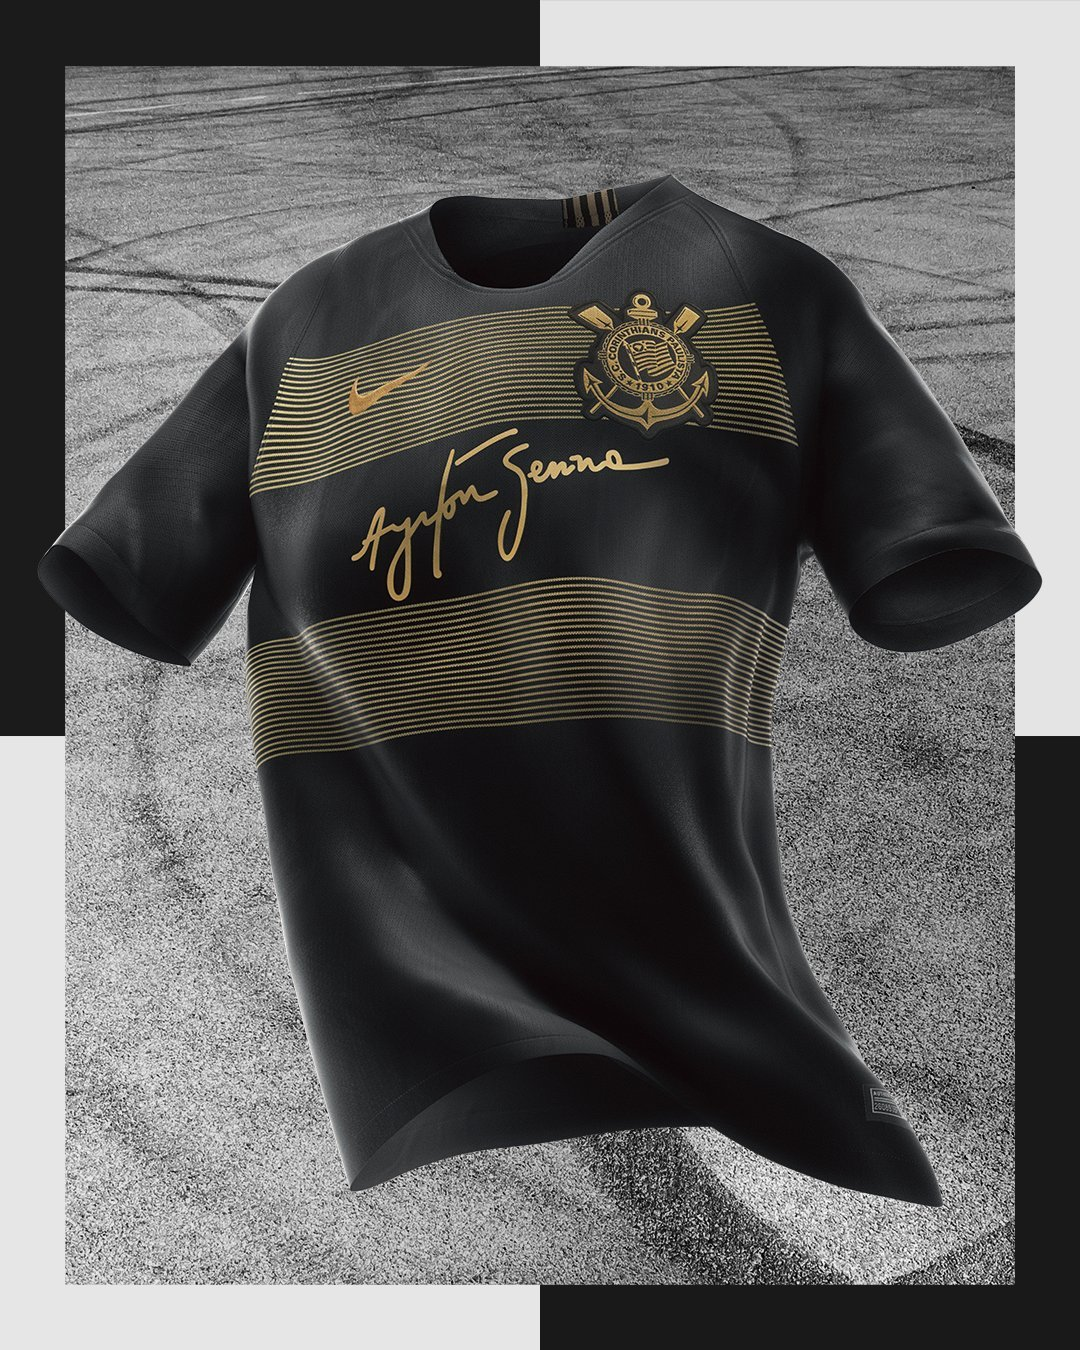 Nova camisa 3 do Corinthians homenageia piloto Ayrton Senna   Blogs ... 7876980acb